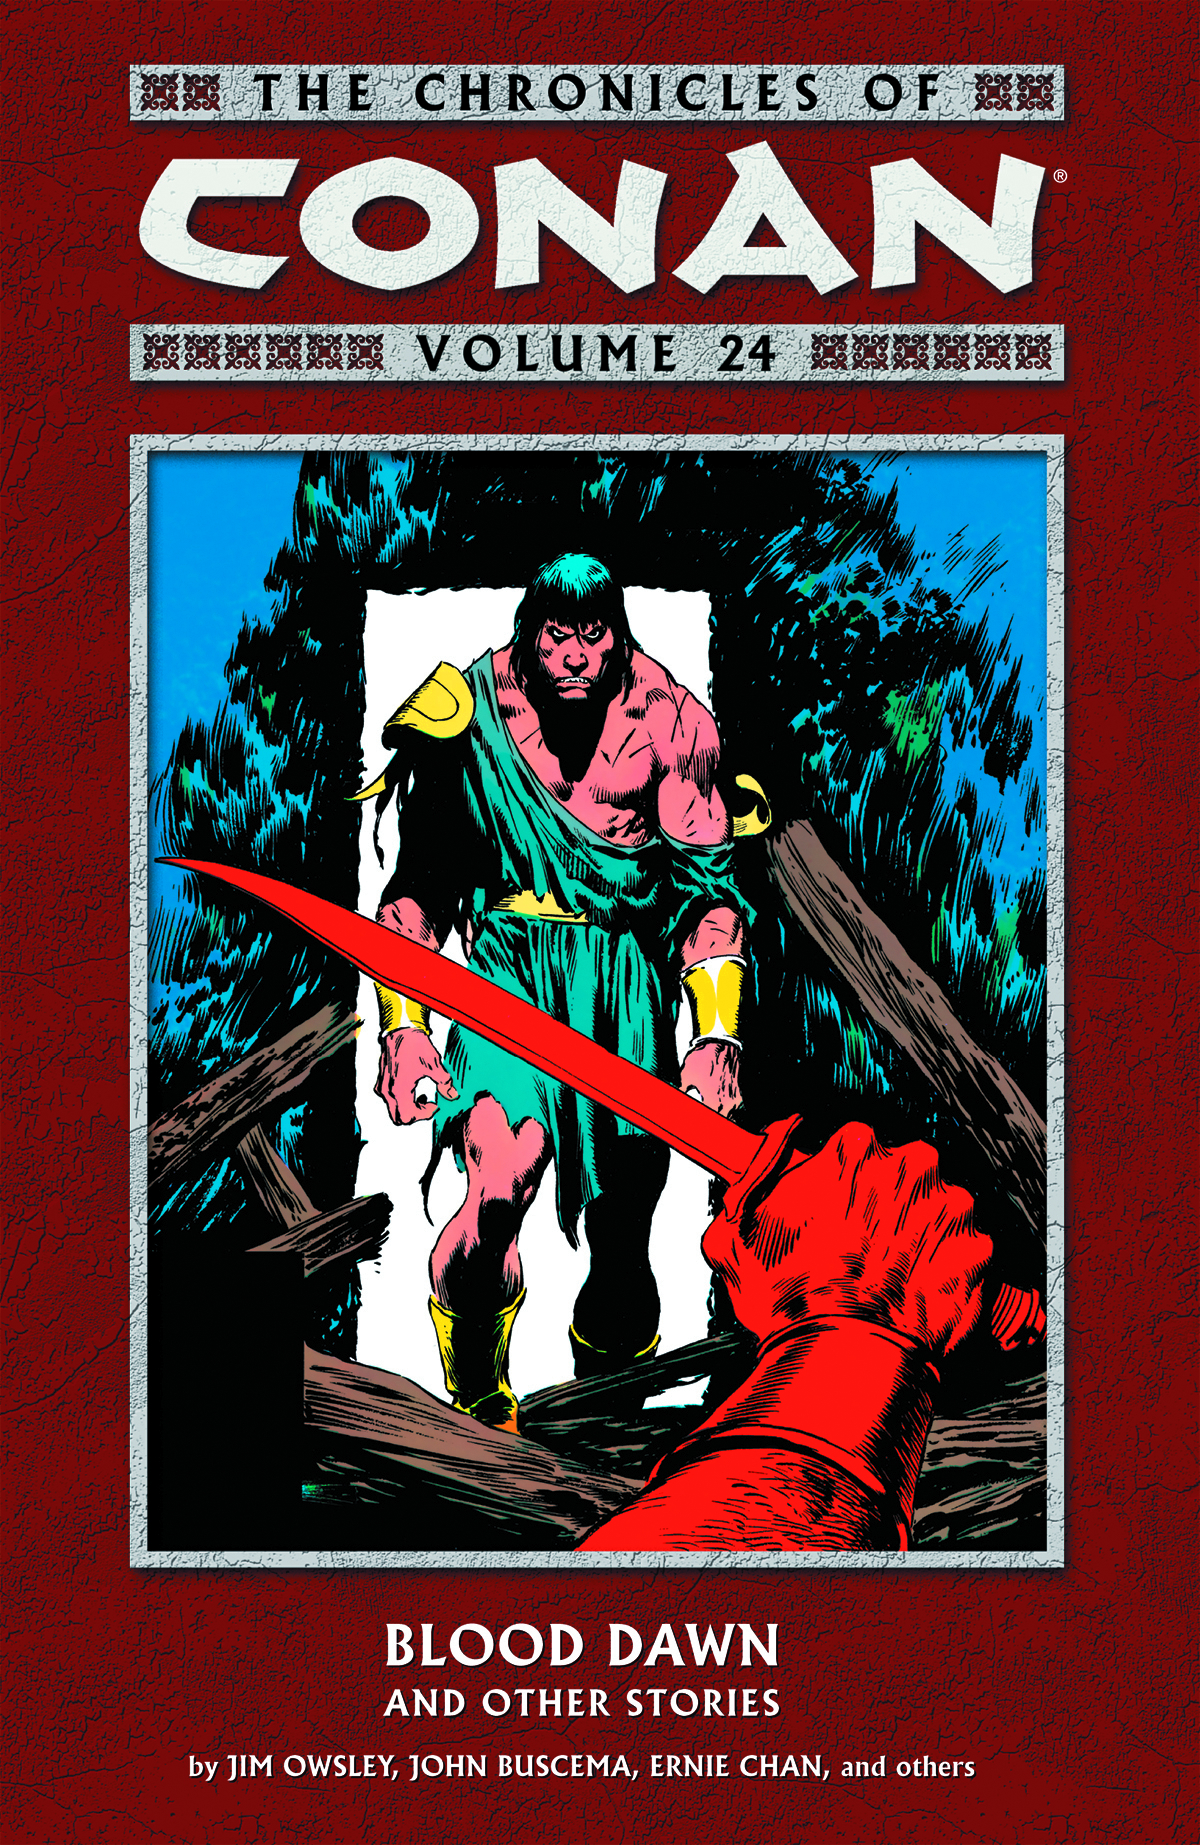 CHRONICLES OF CONAN TP VOL 24 BLOOD DAWN & OTHER STORIES